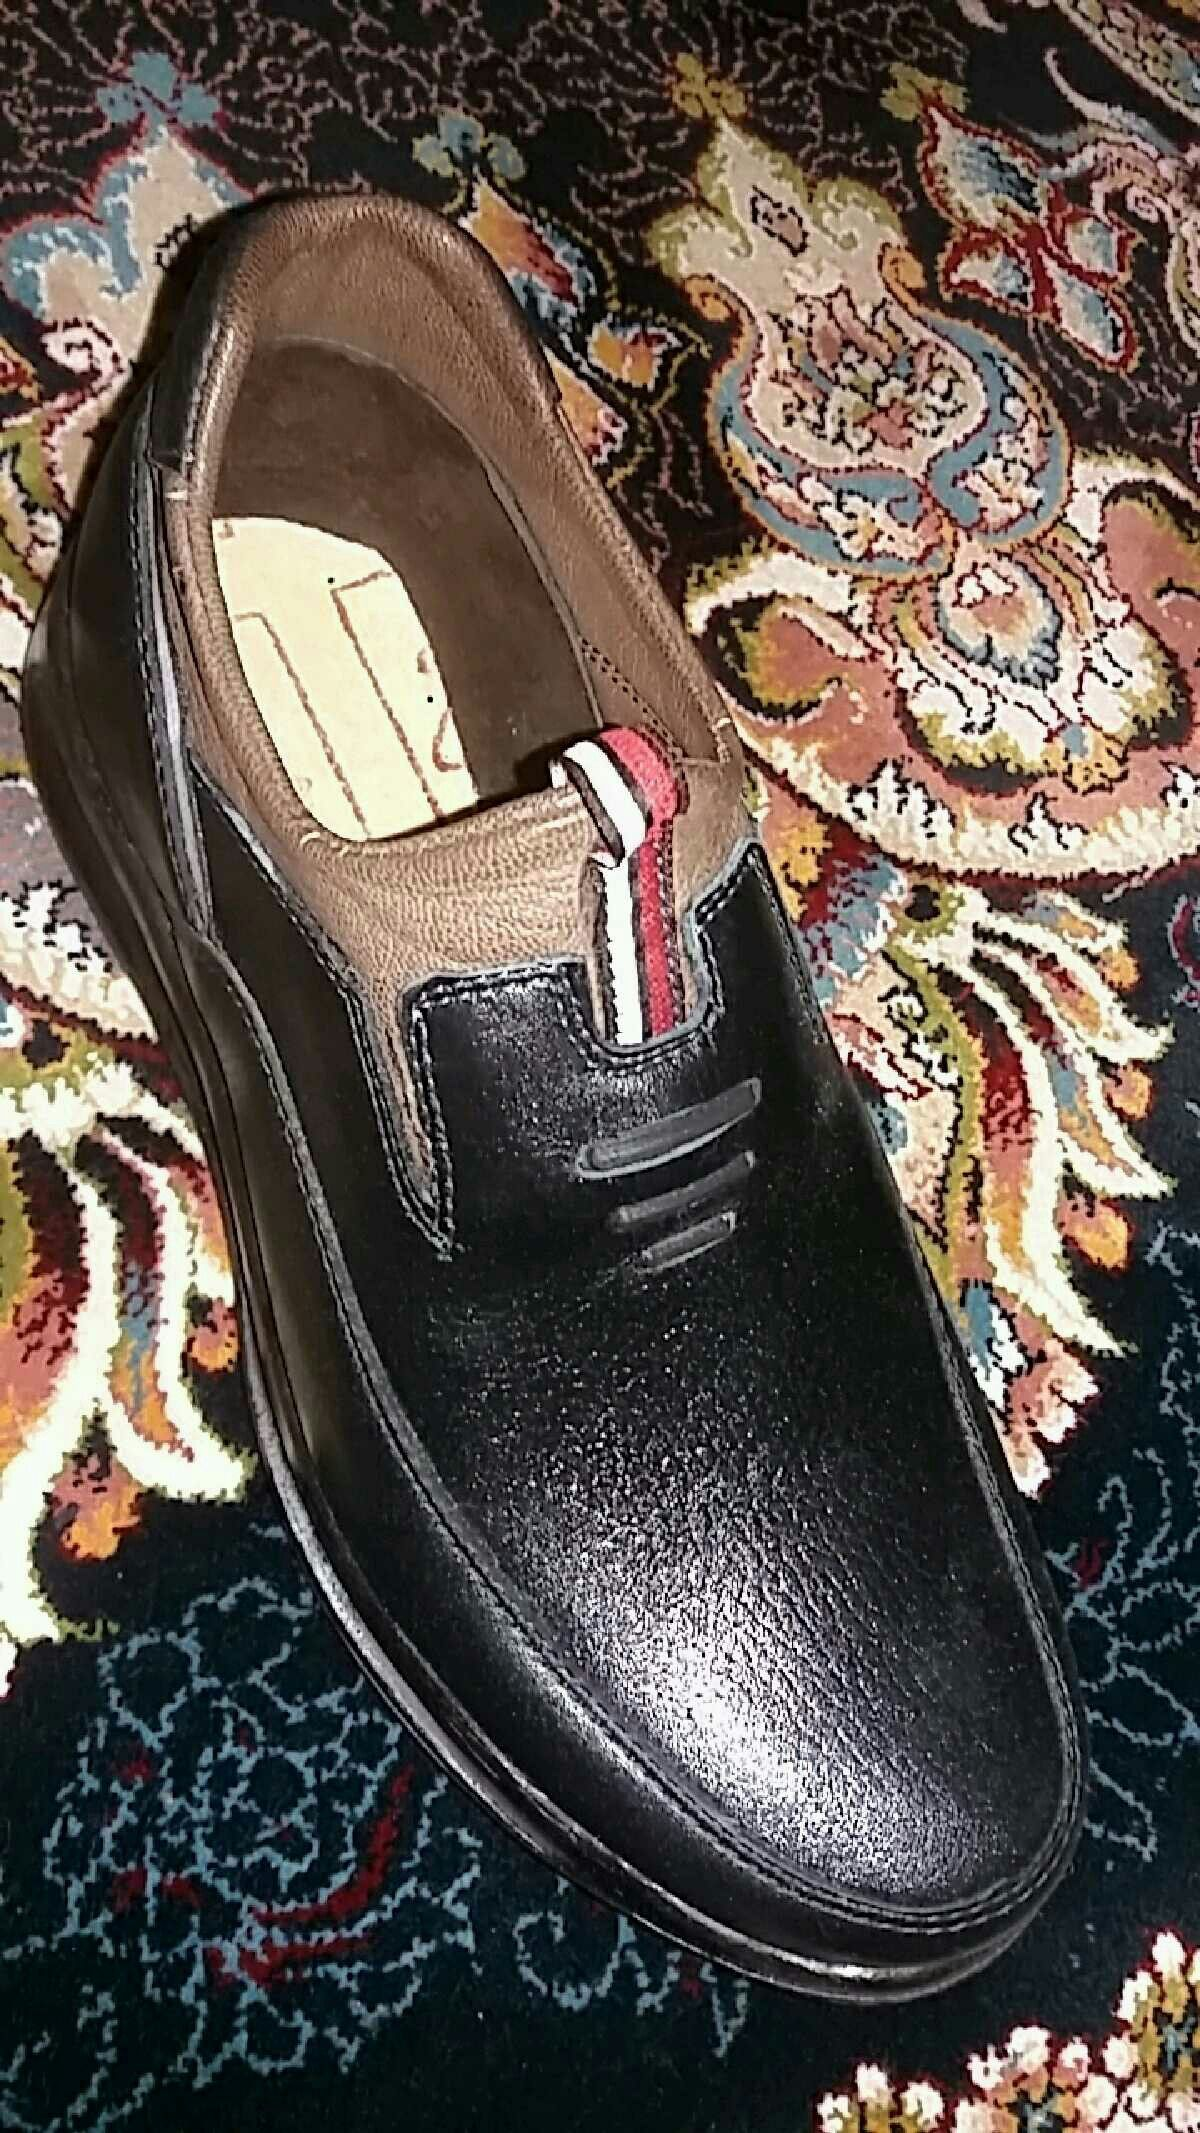 Pin By Asghar Pourmahmood On عکس In 2020 Dress Shoes Men Oxford Shoes Dress Shoes